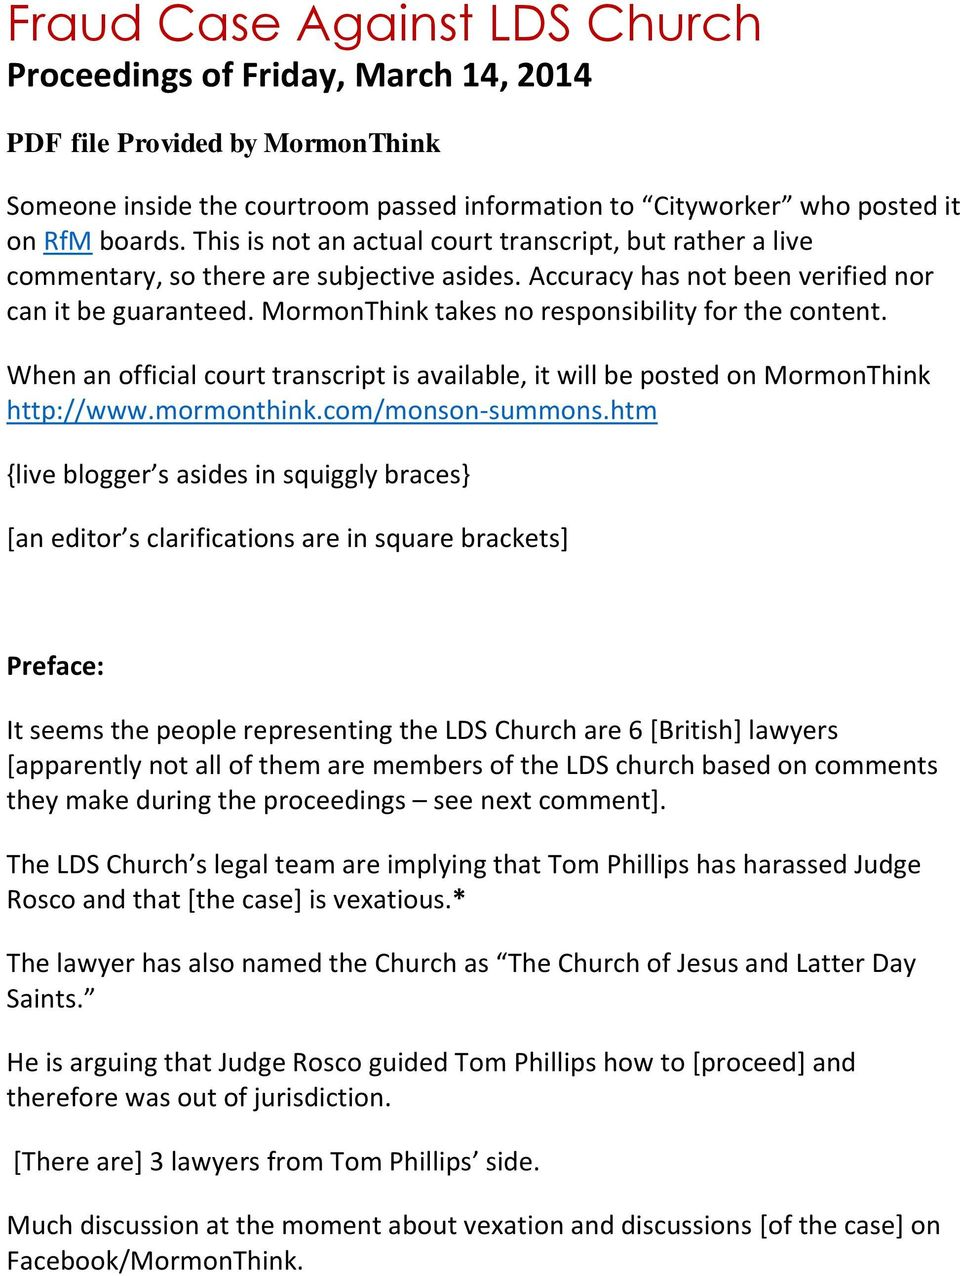 MormonThink takes no responsibility for the content. When an official court transcript is available, it will be posted on MormonThink http://www.mormonthink.com/monson-summons.